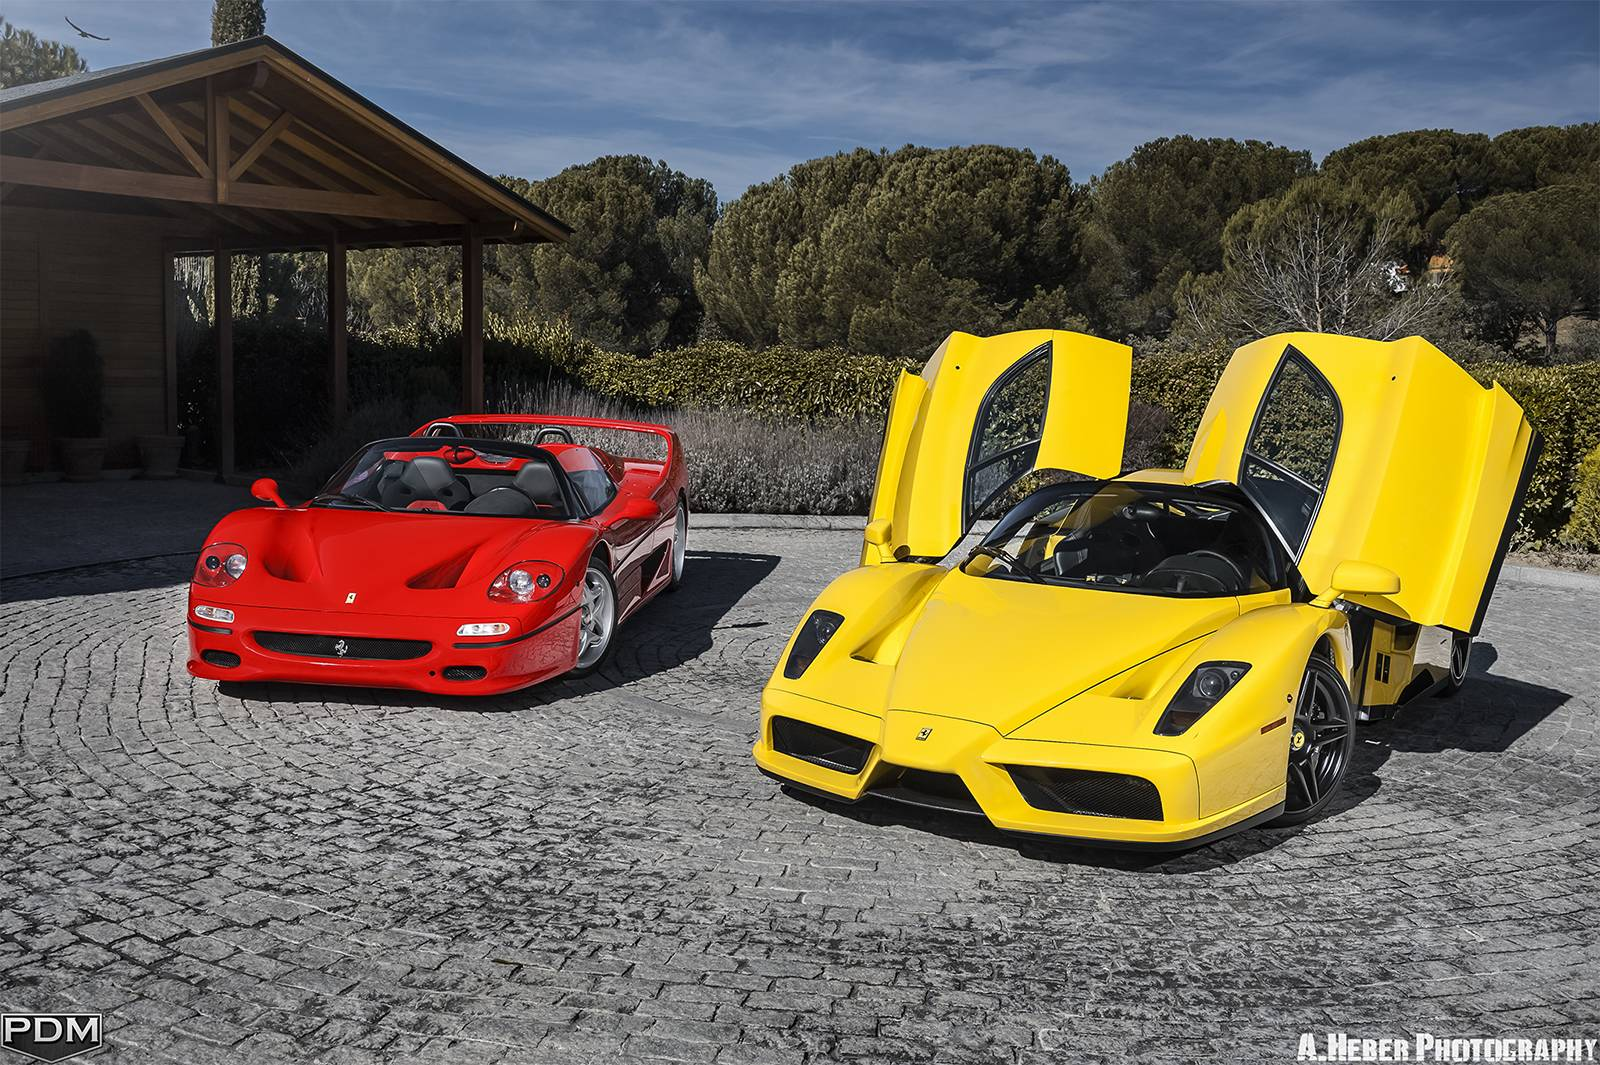 Stunning Ferrari Enzo And F50 2015